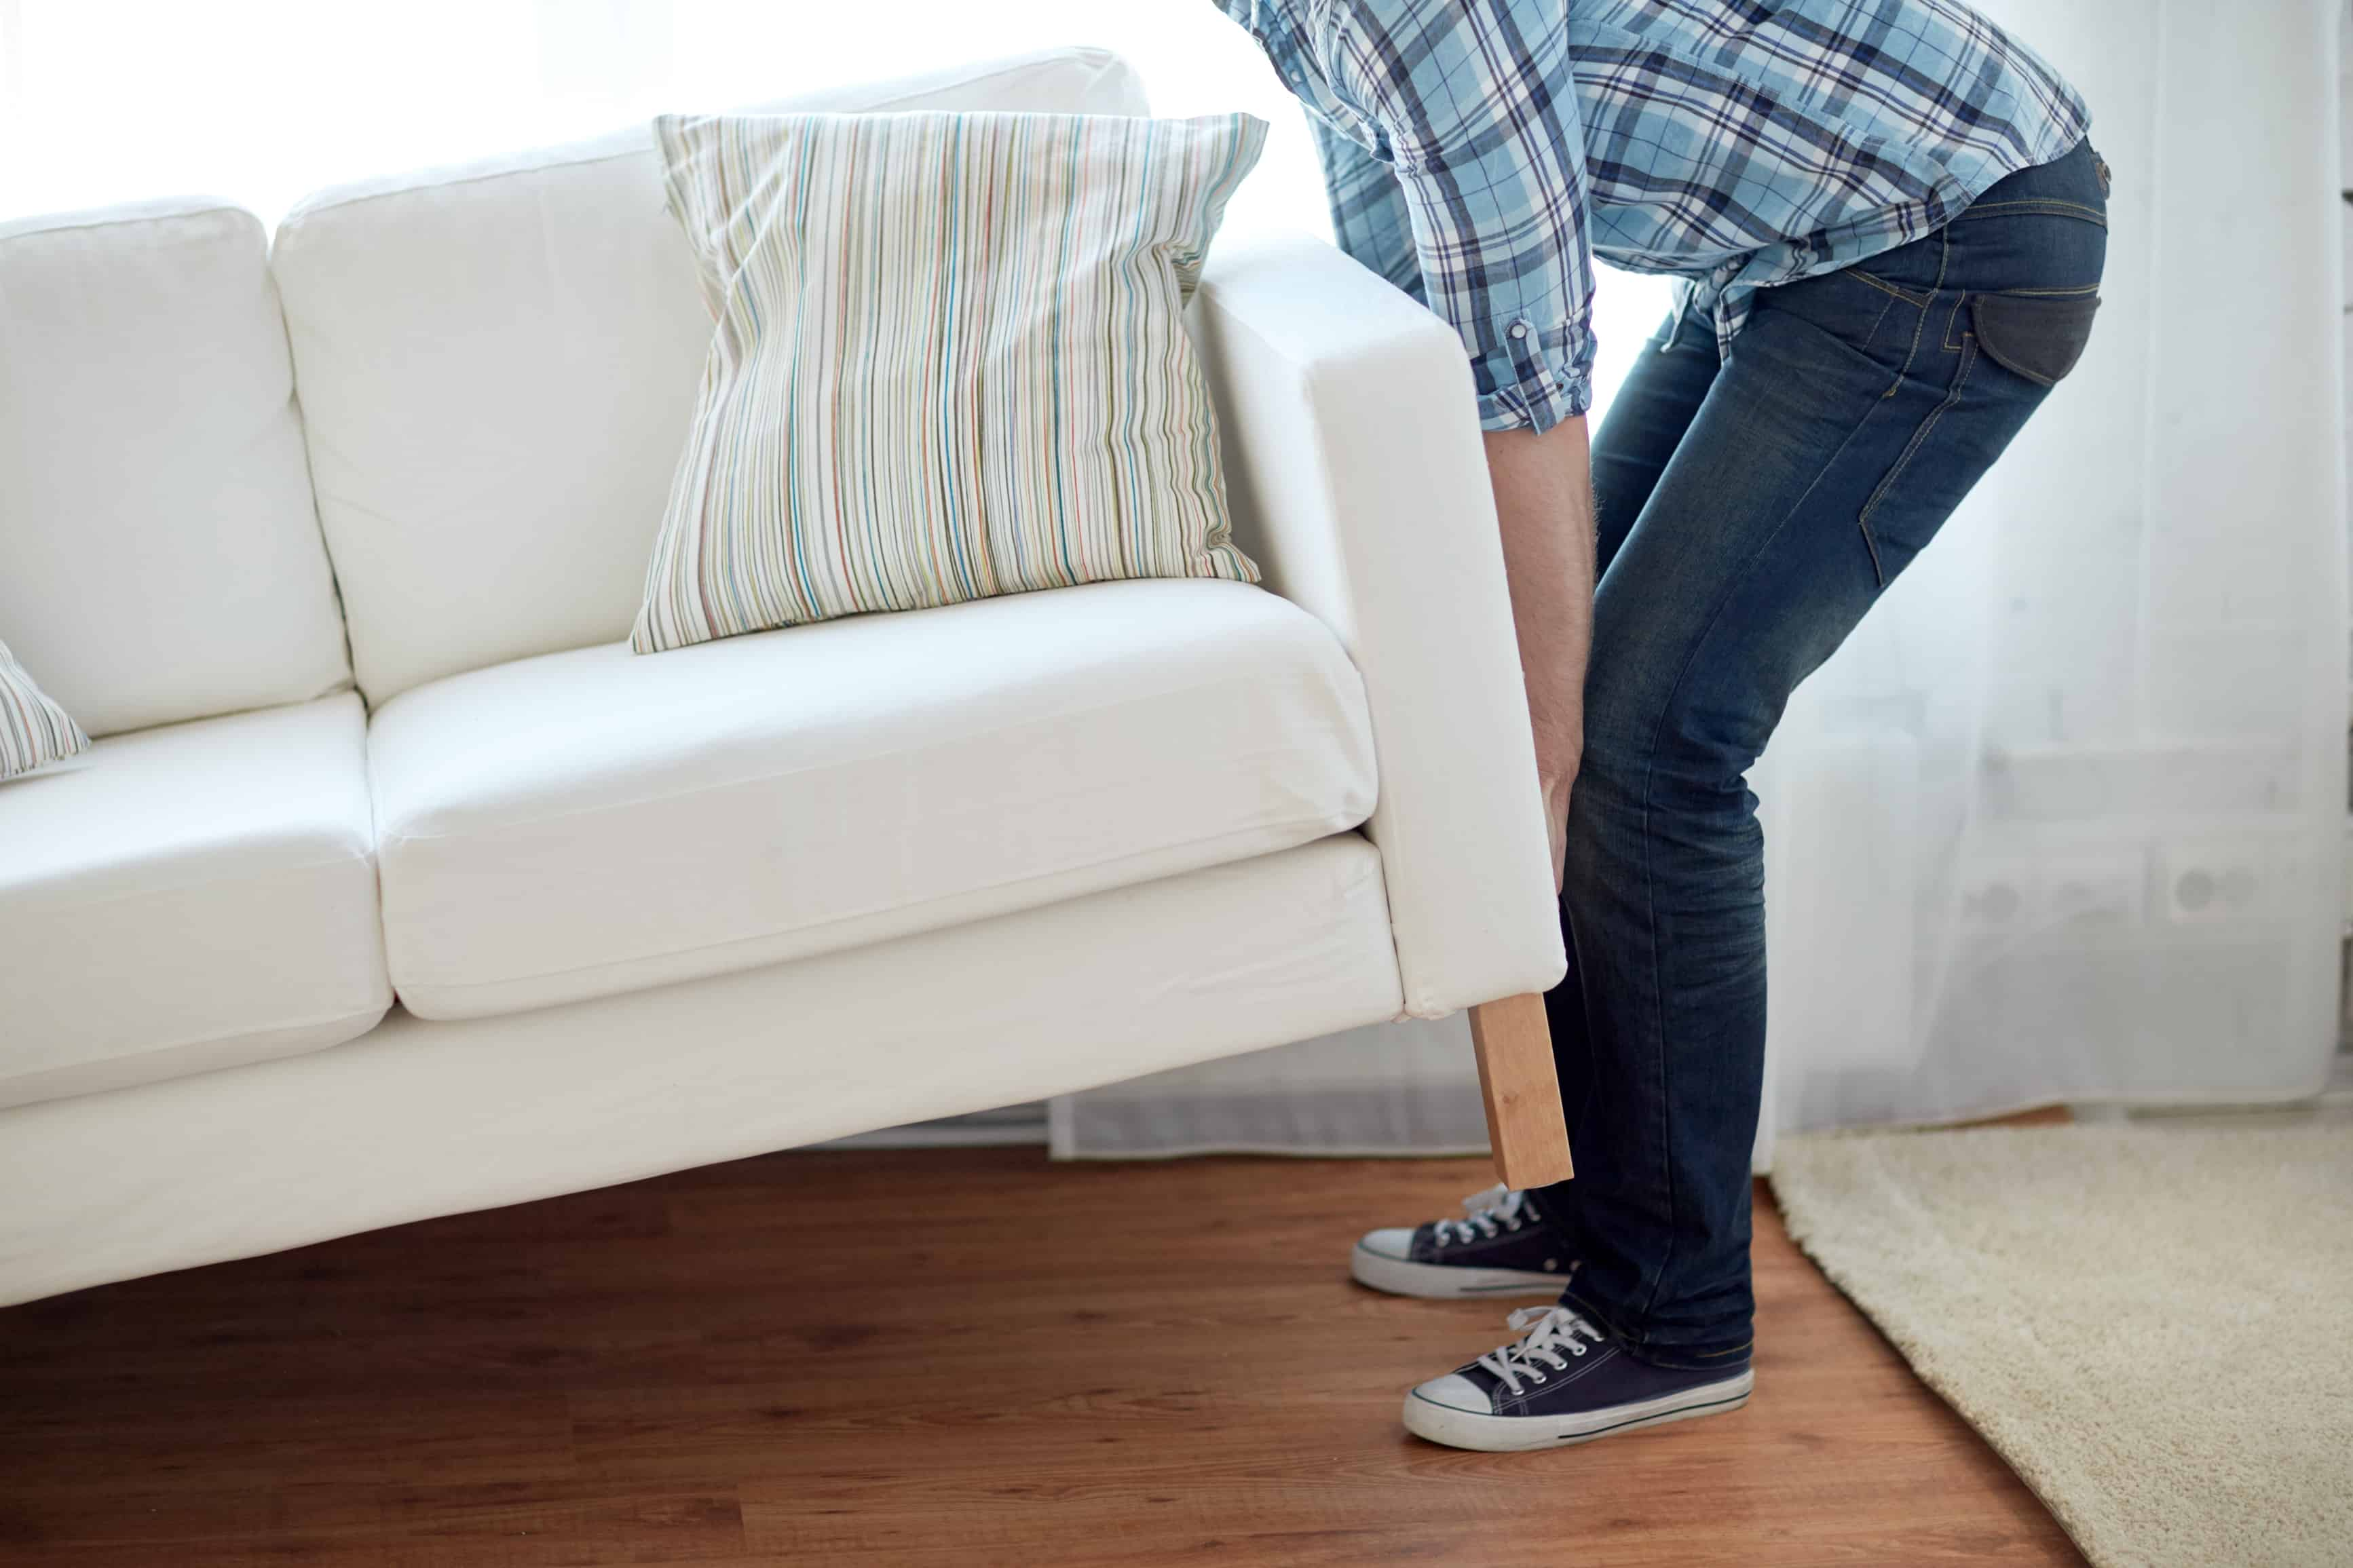 How To Clean Hardwood Floors. Move Furniture